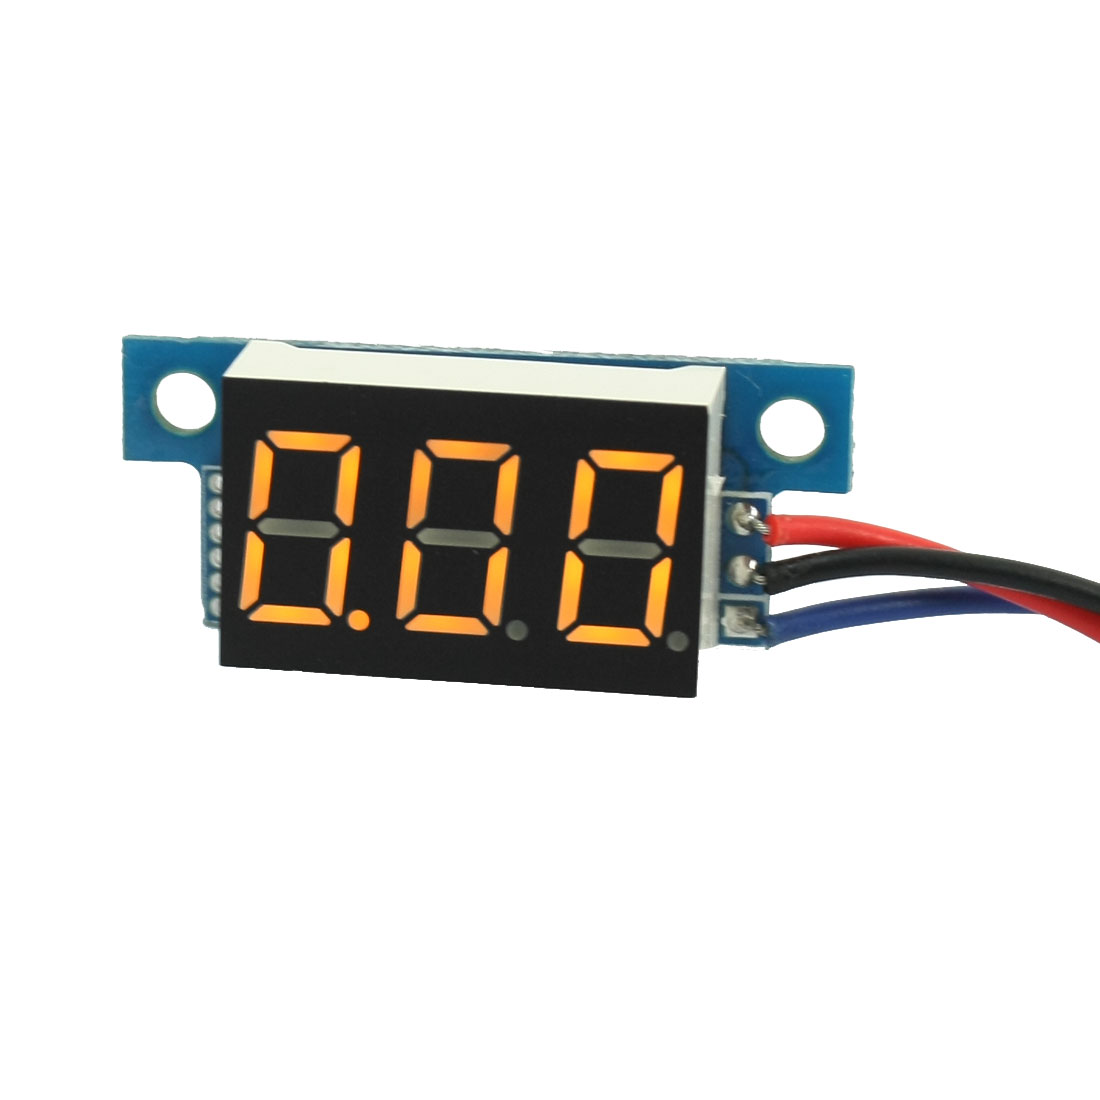 Digital DC 0-10V LED Display Yellow Digit Voltage Tester Gauge Panel Voltmeter